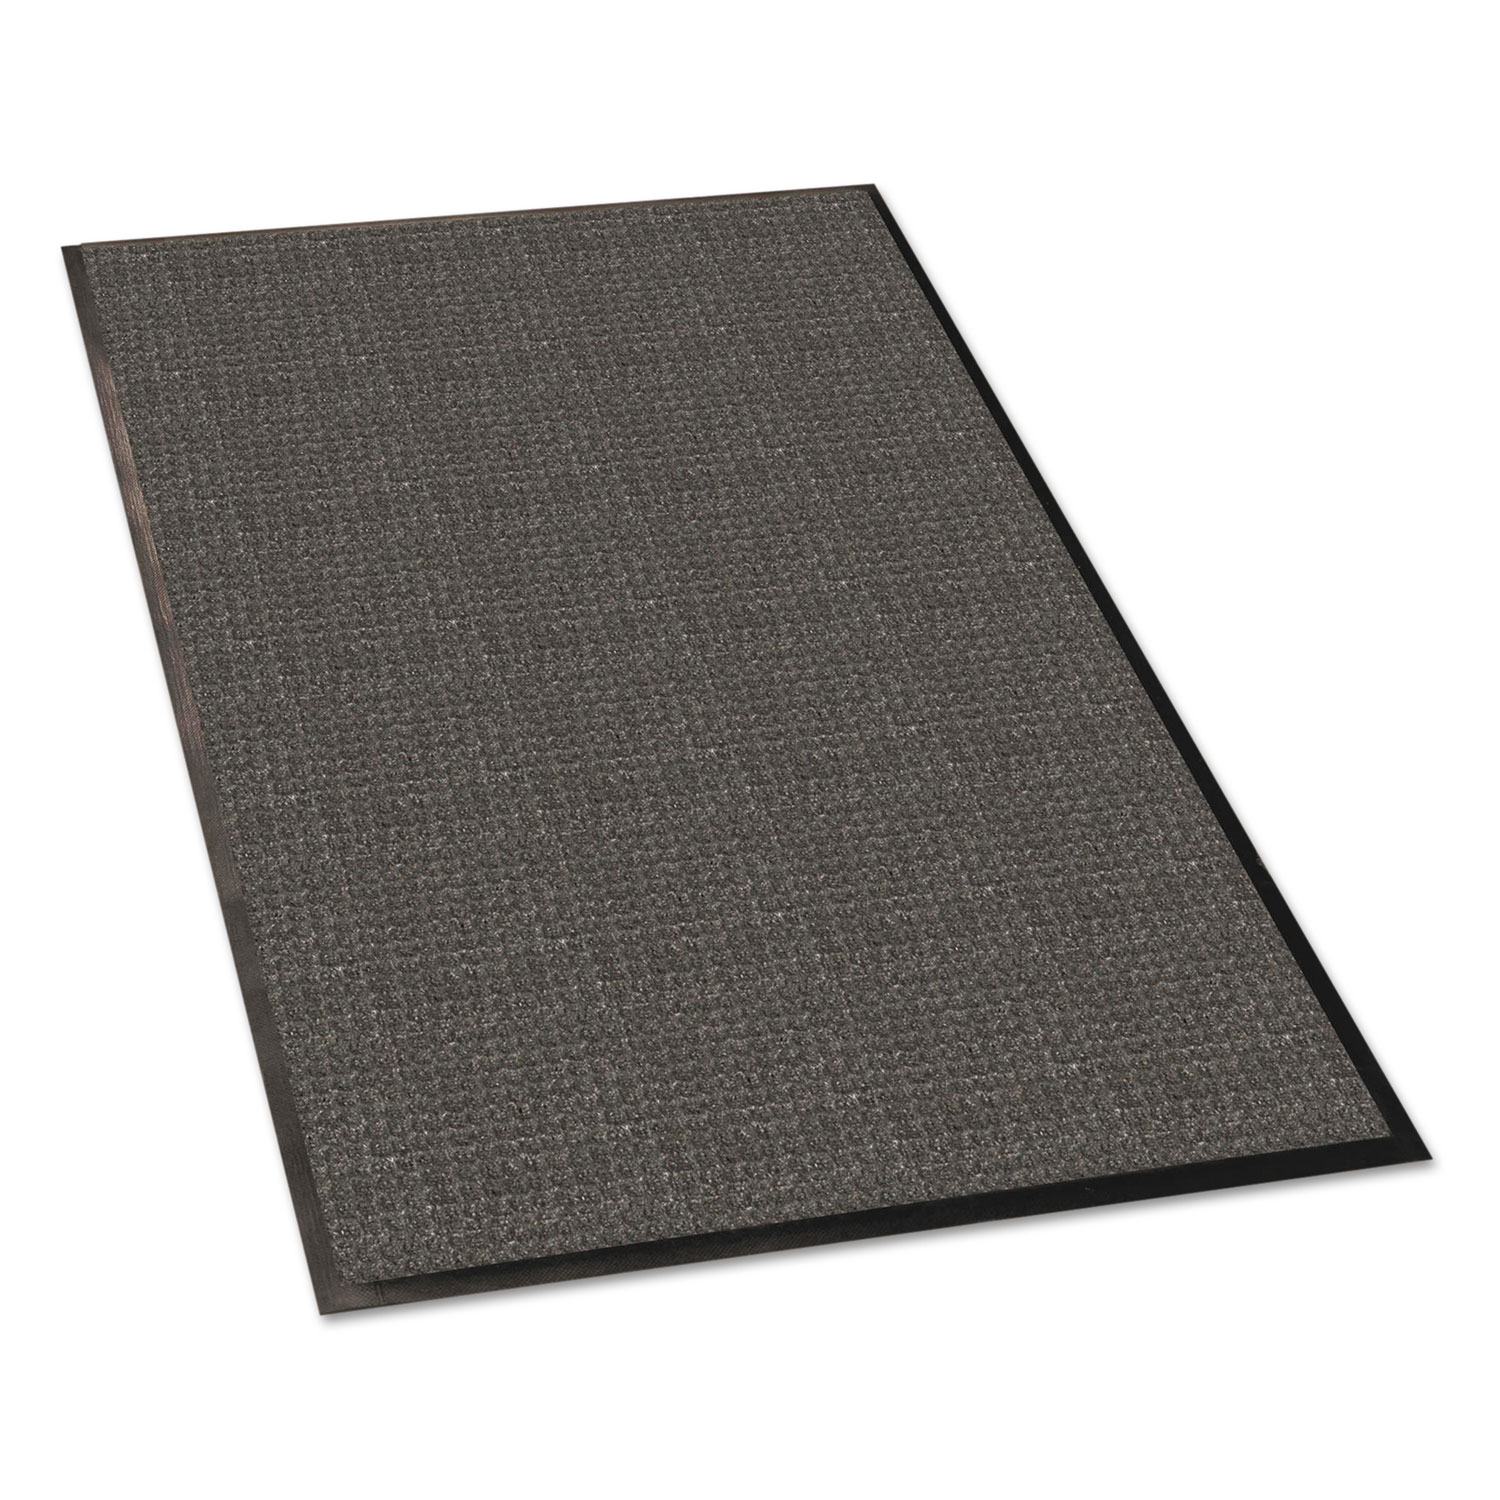 zoom dog click solutions pan and water home paws yard mat mouseover enlarge guard mats to square for